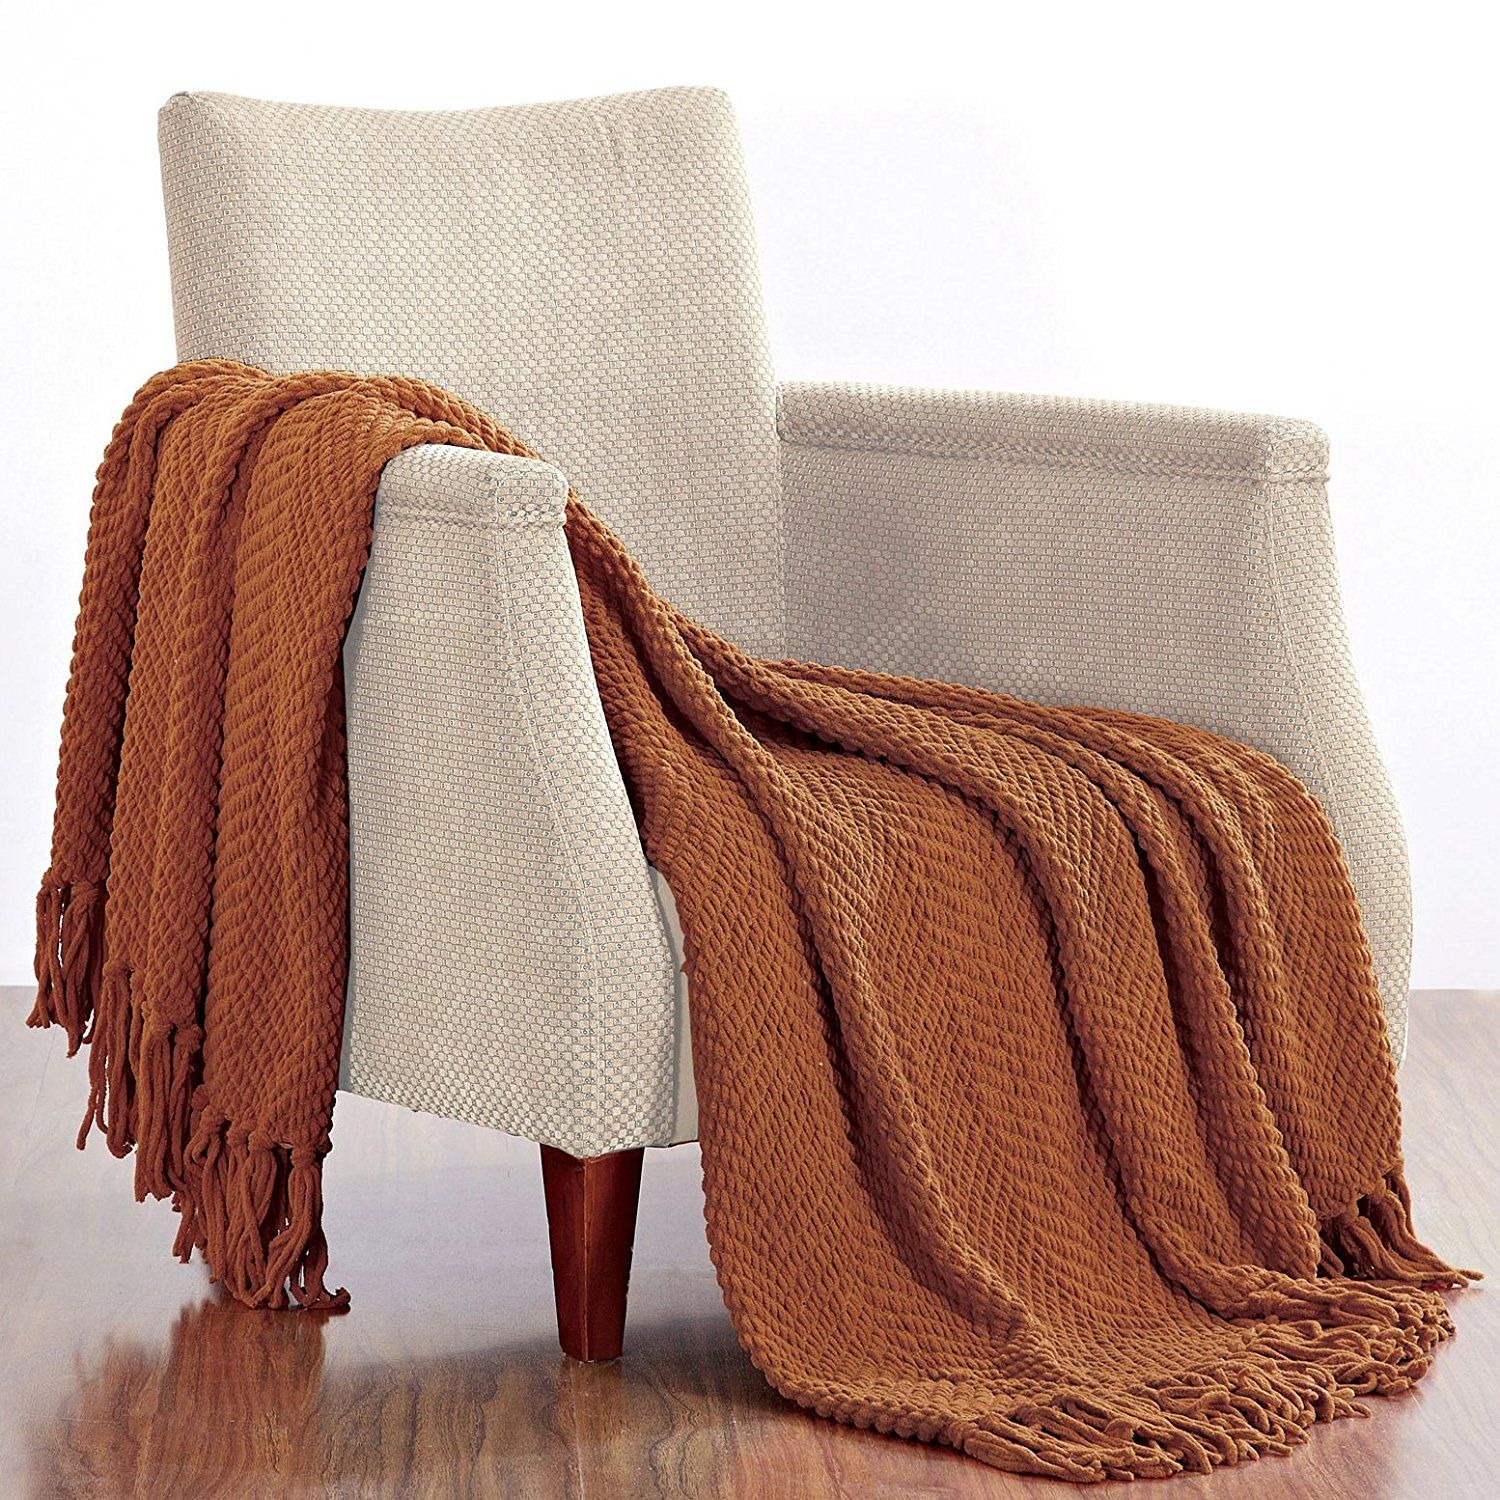 Throw Blankets For Couches Amusing Boon Knitted Tweed Throw Couch Cover Blanket 50 X 60 Rust  Throw Inspiration